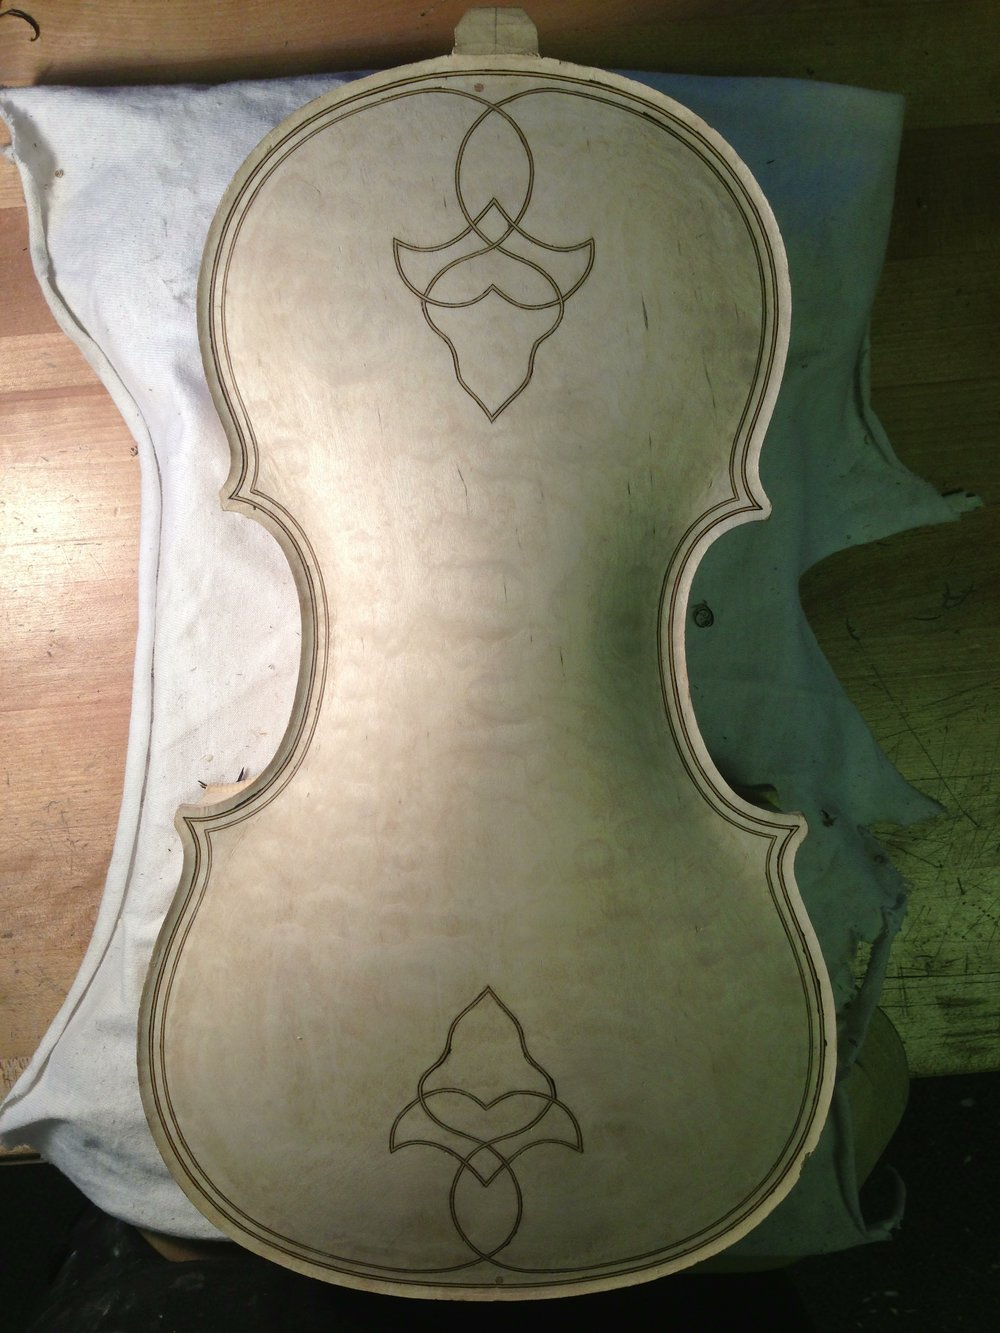 No. 5 - Completed back